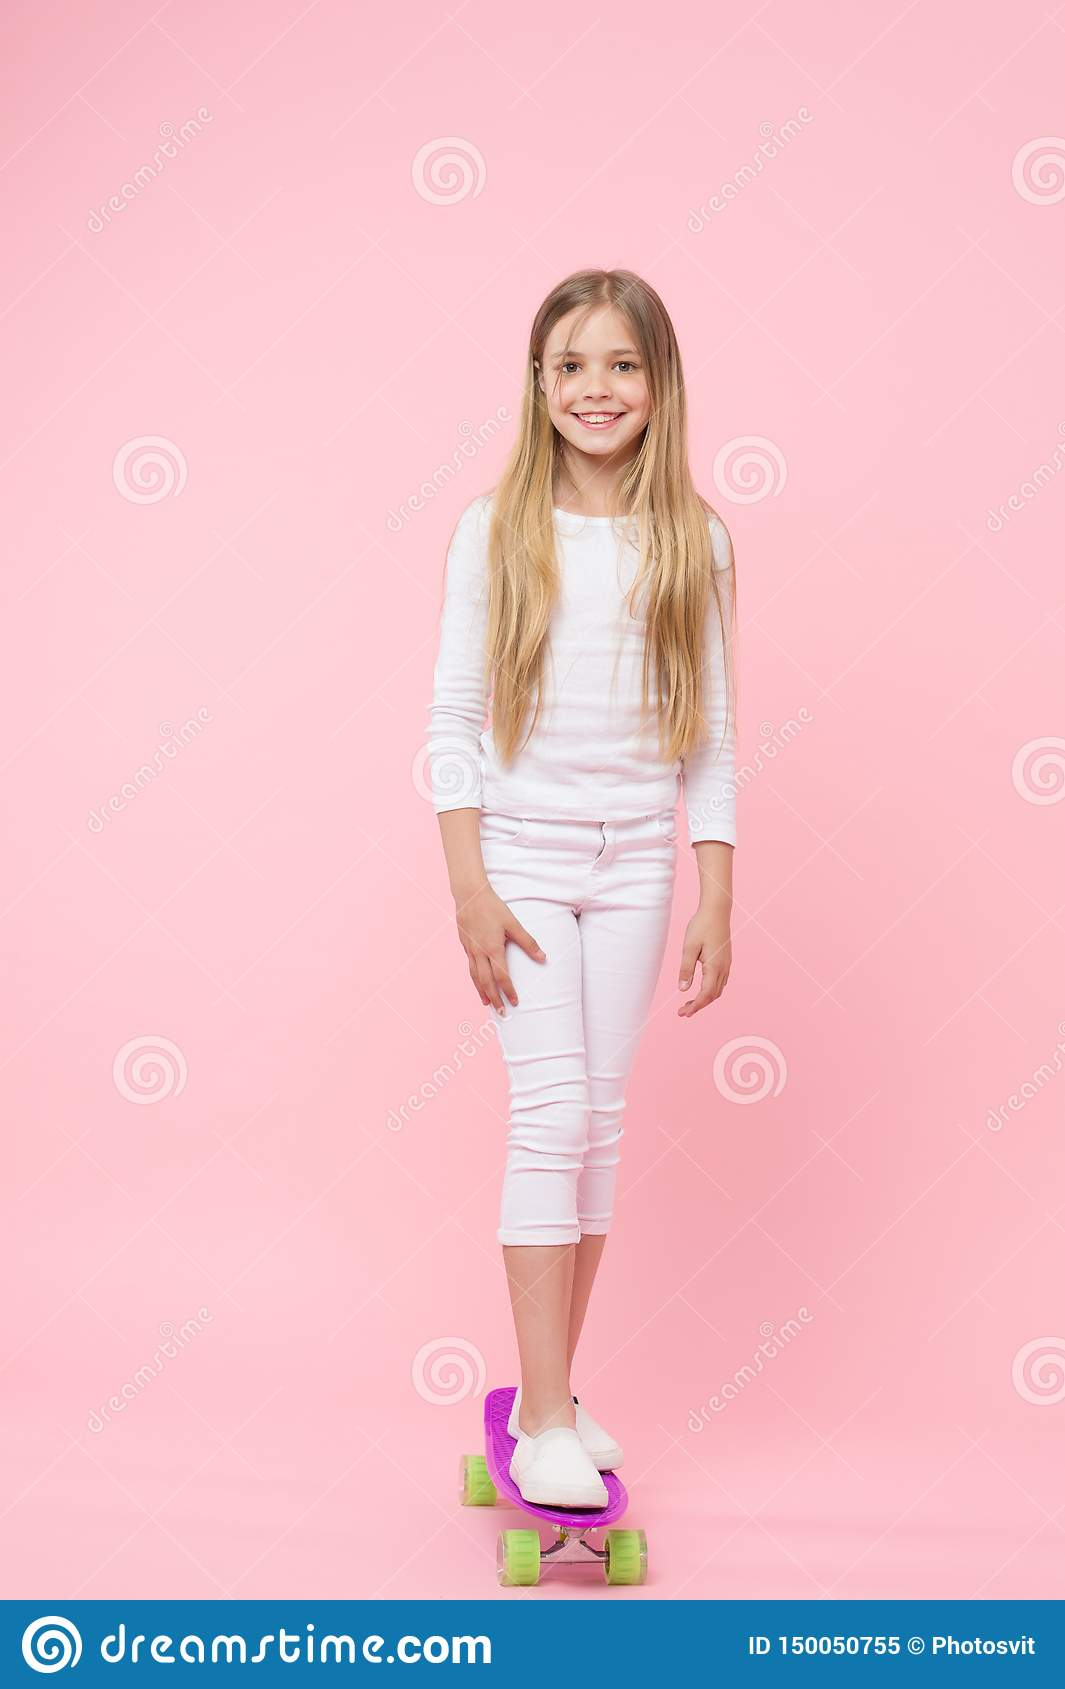 A pretty good skater girl. Cute small girl standing on skateboard on pink background. Little girl child on violet penny